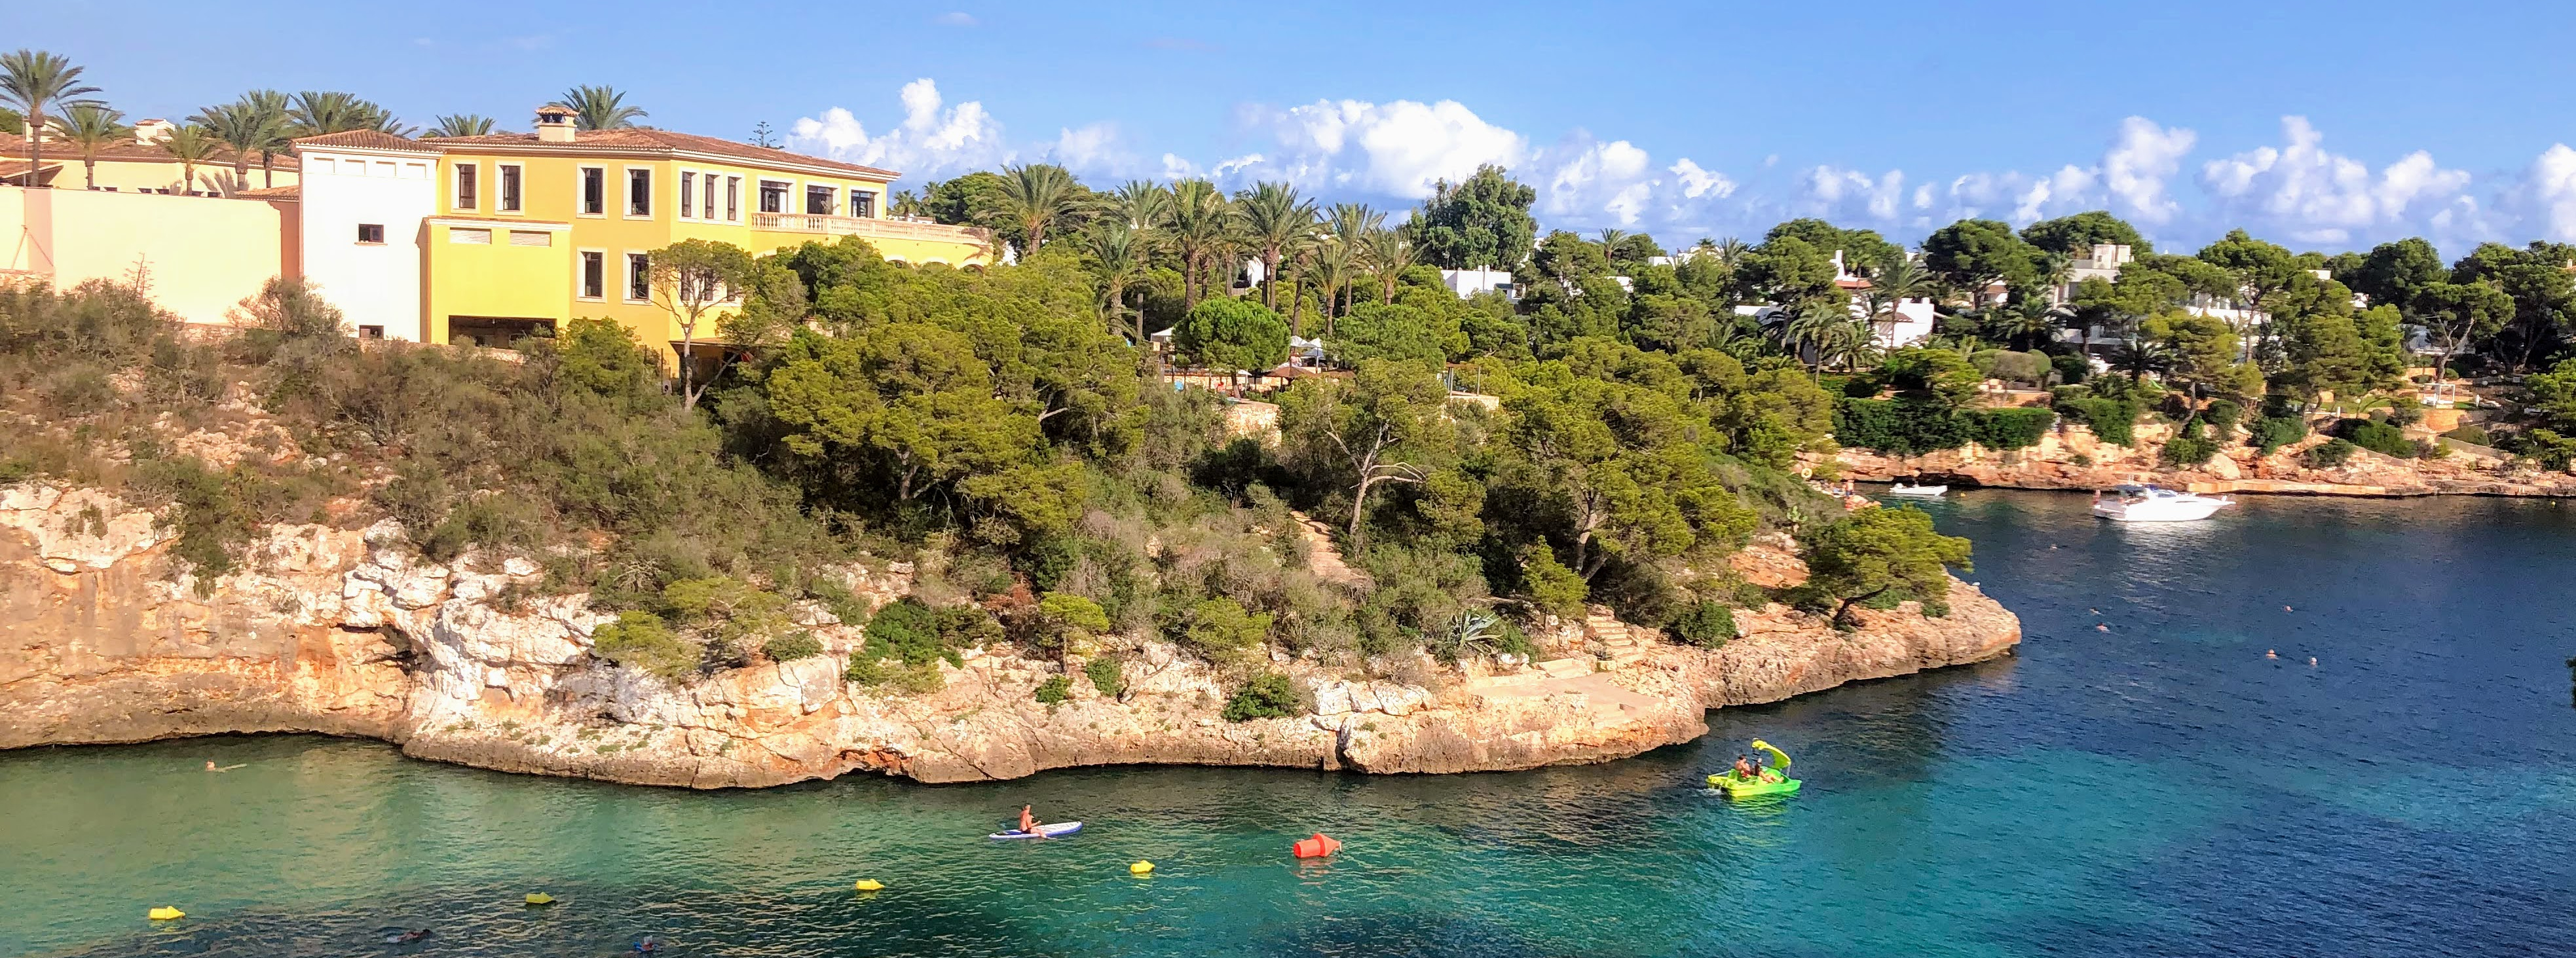 view of the ocean with some pines and houses on cliffs